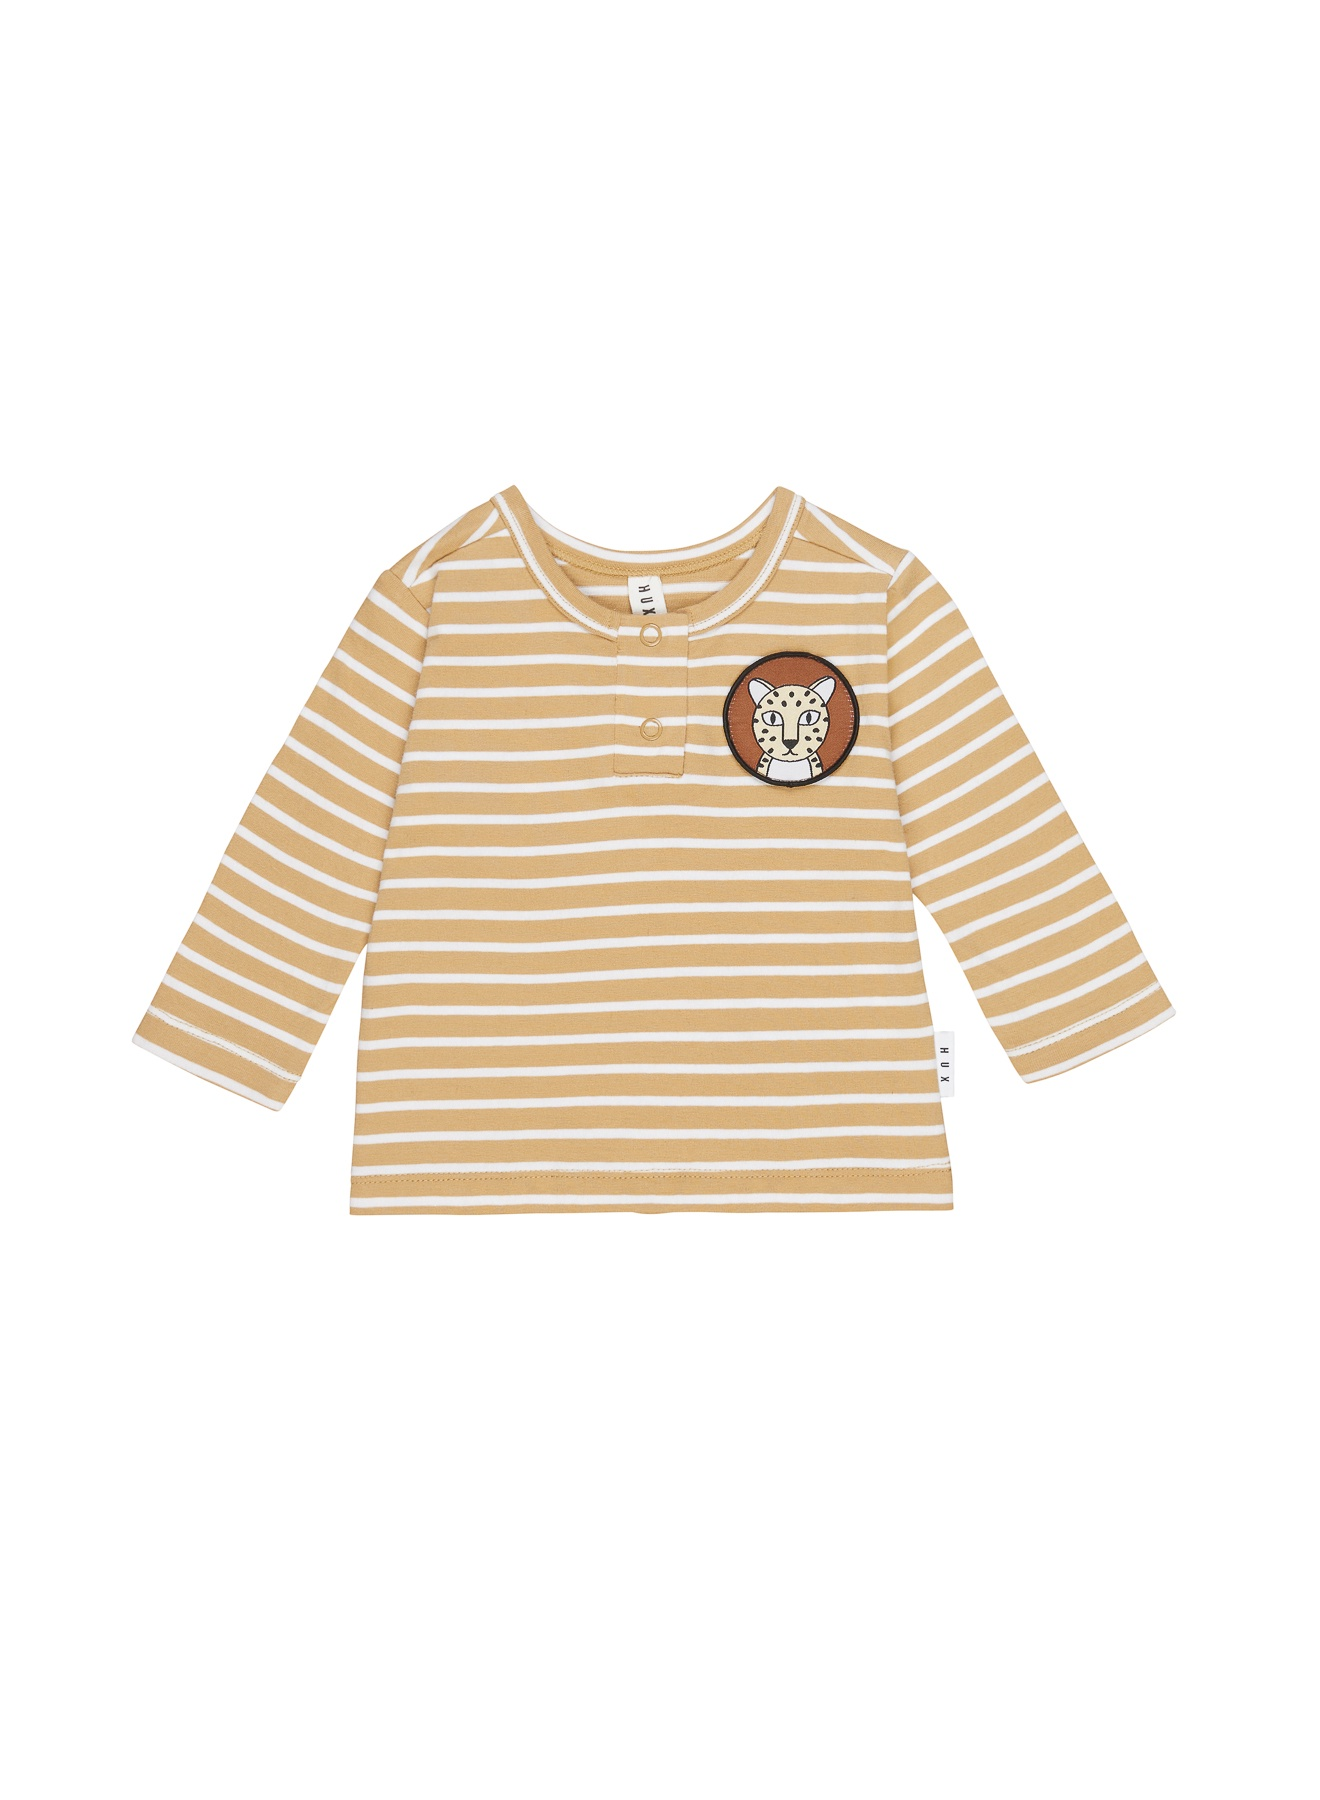 MUSTARD STRIPE TOP KID